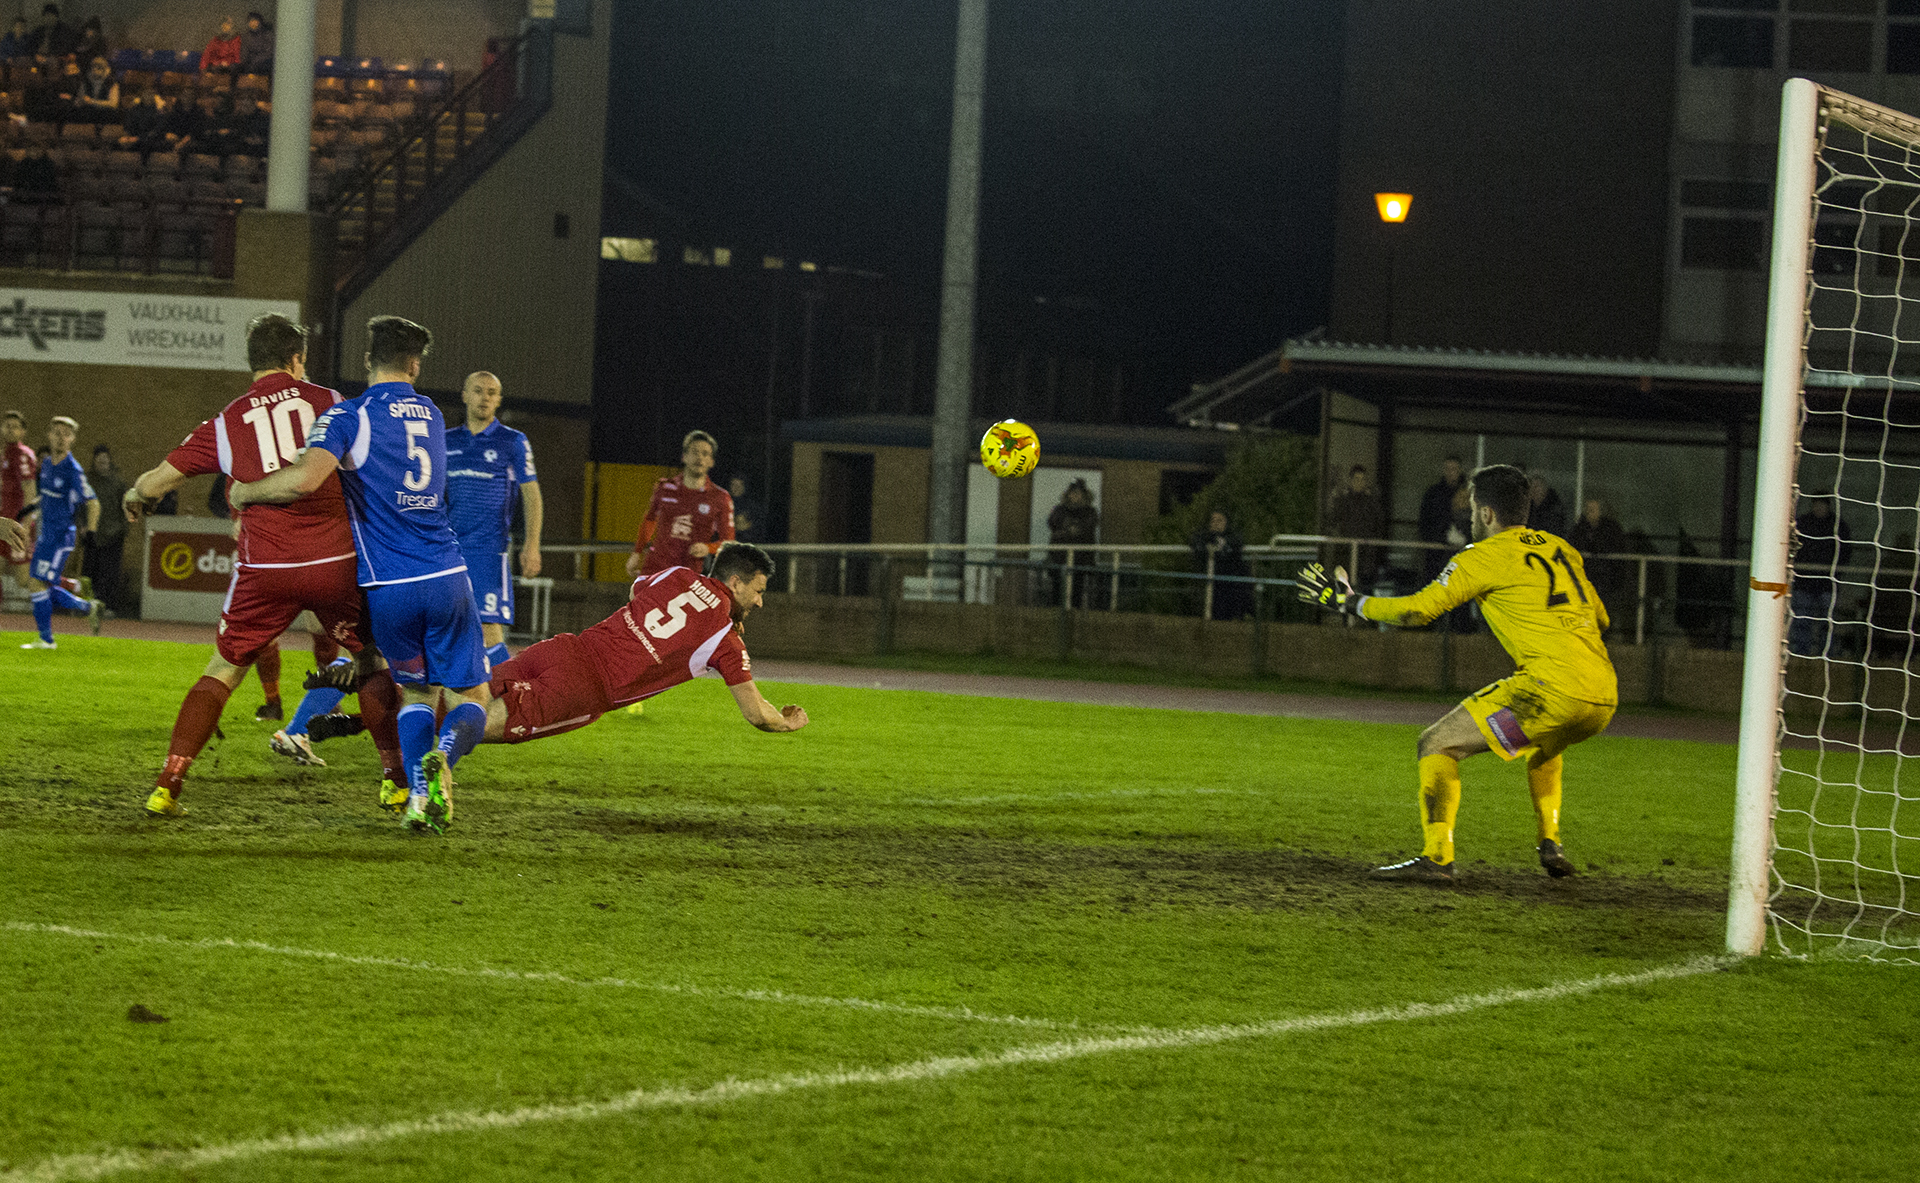 George Horan scores his hat-trick goal against Airbus UK - © NCM Media